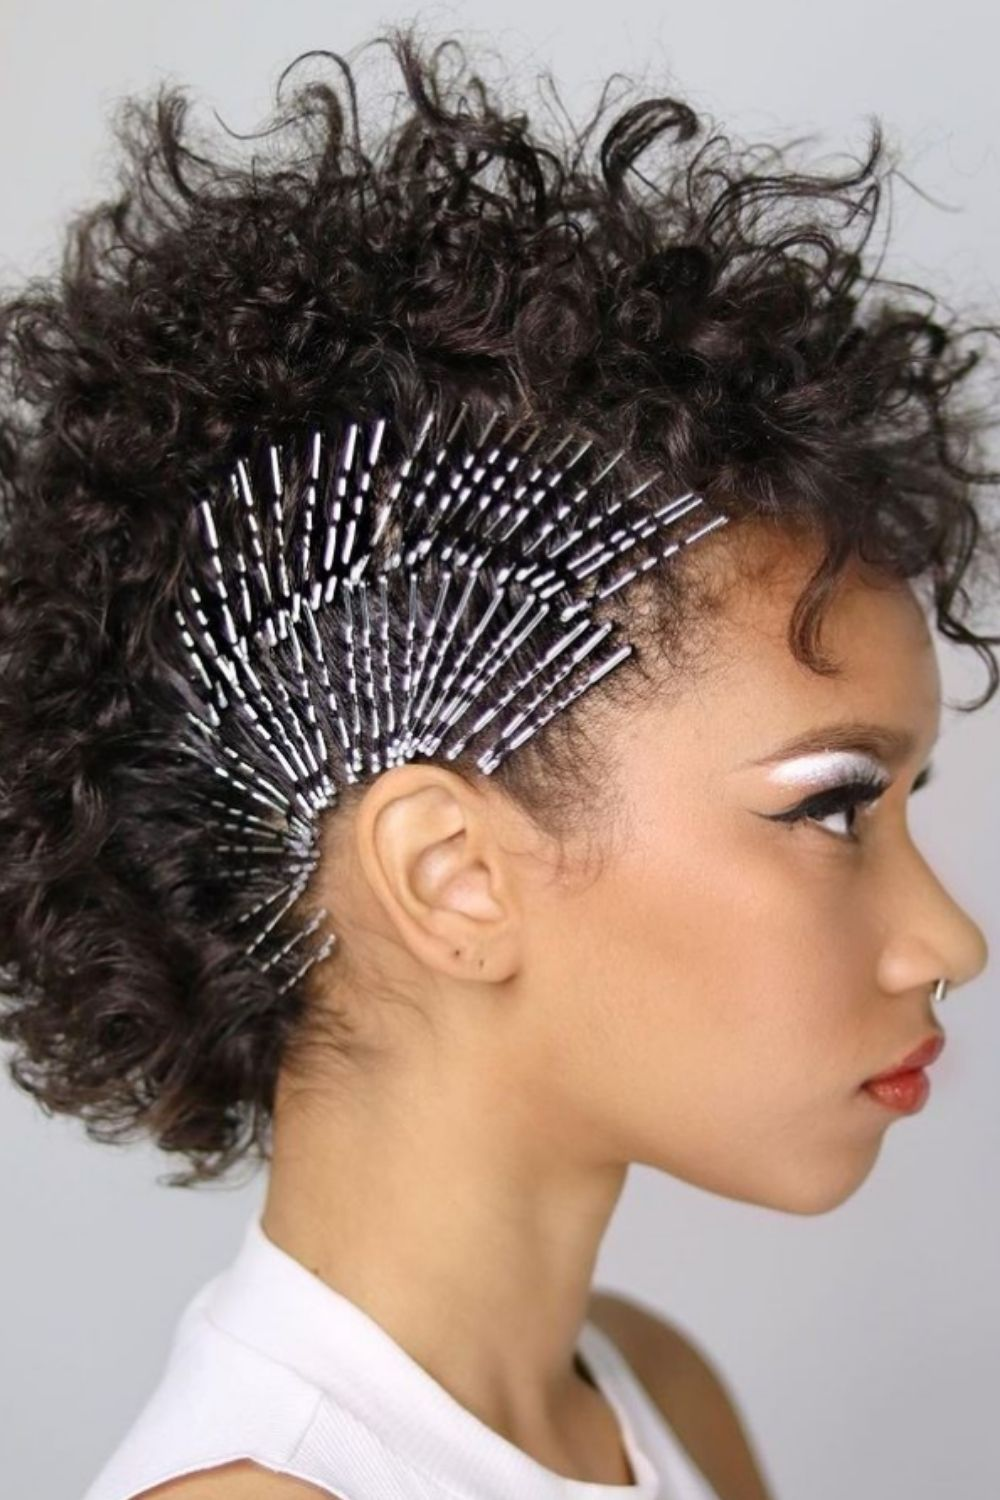 Bobby pin hairstyle | fashion hair accessories hairstyle trend for 2021